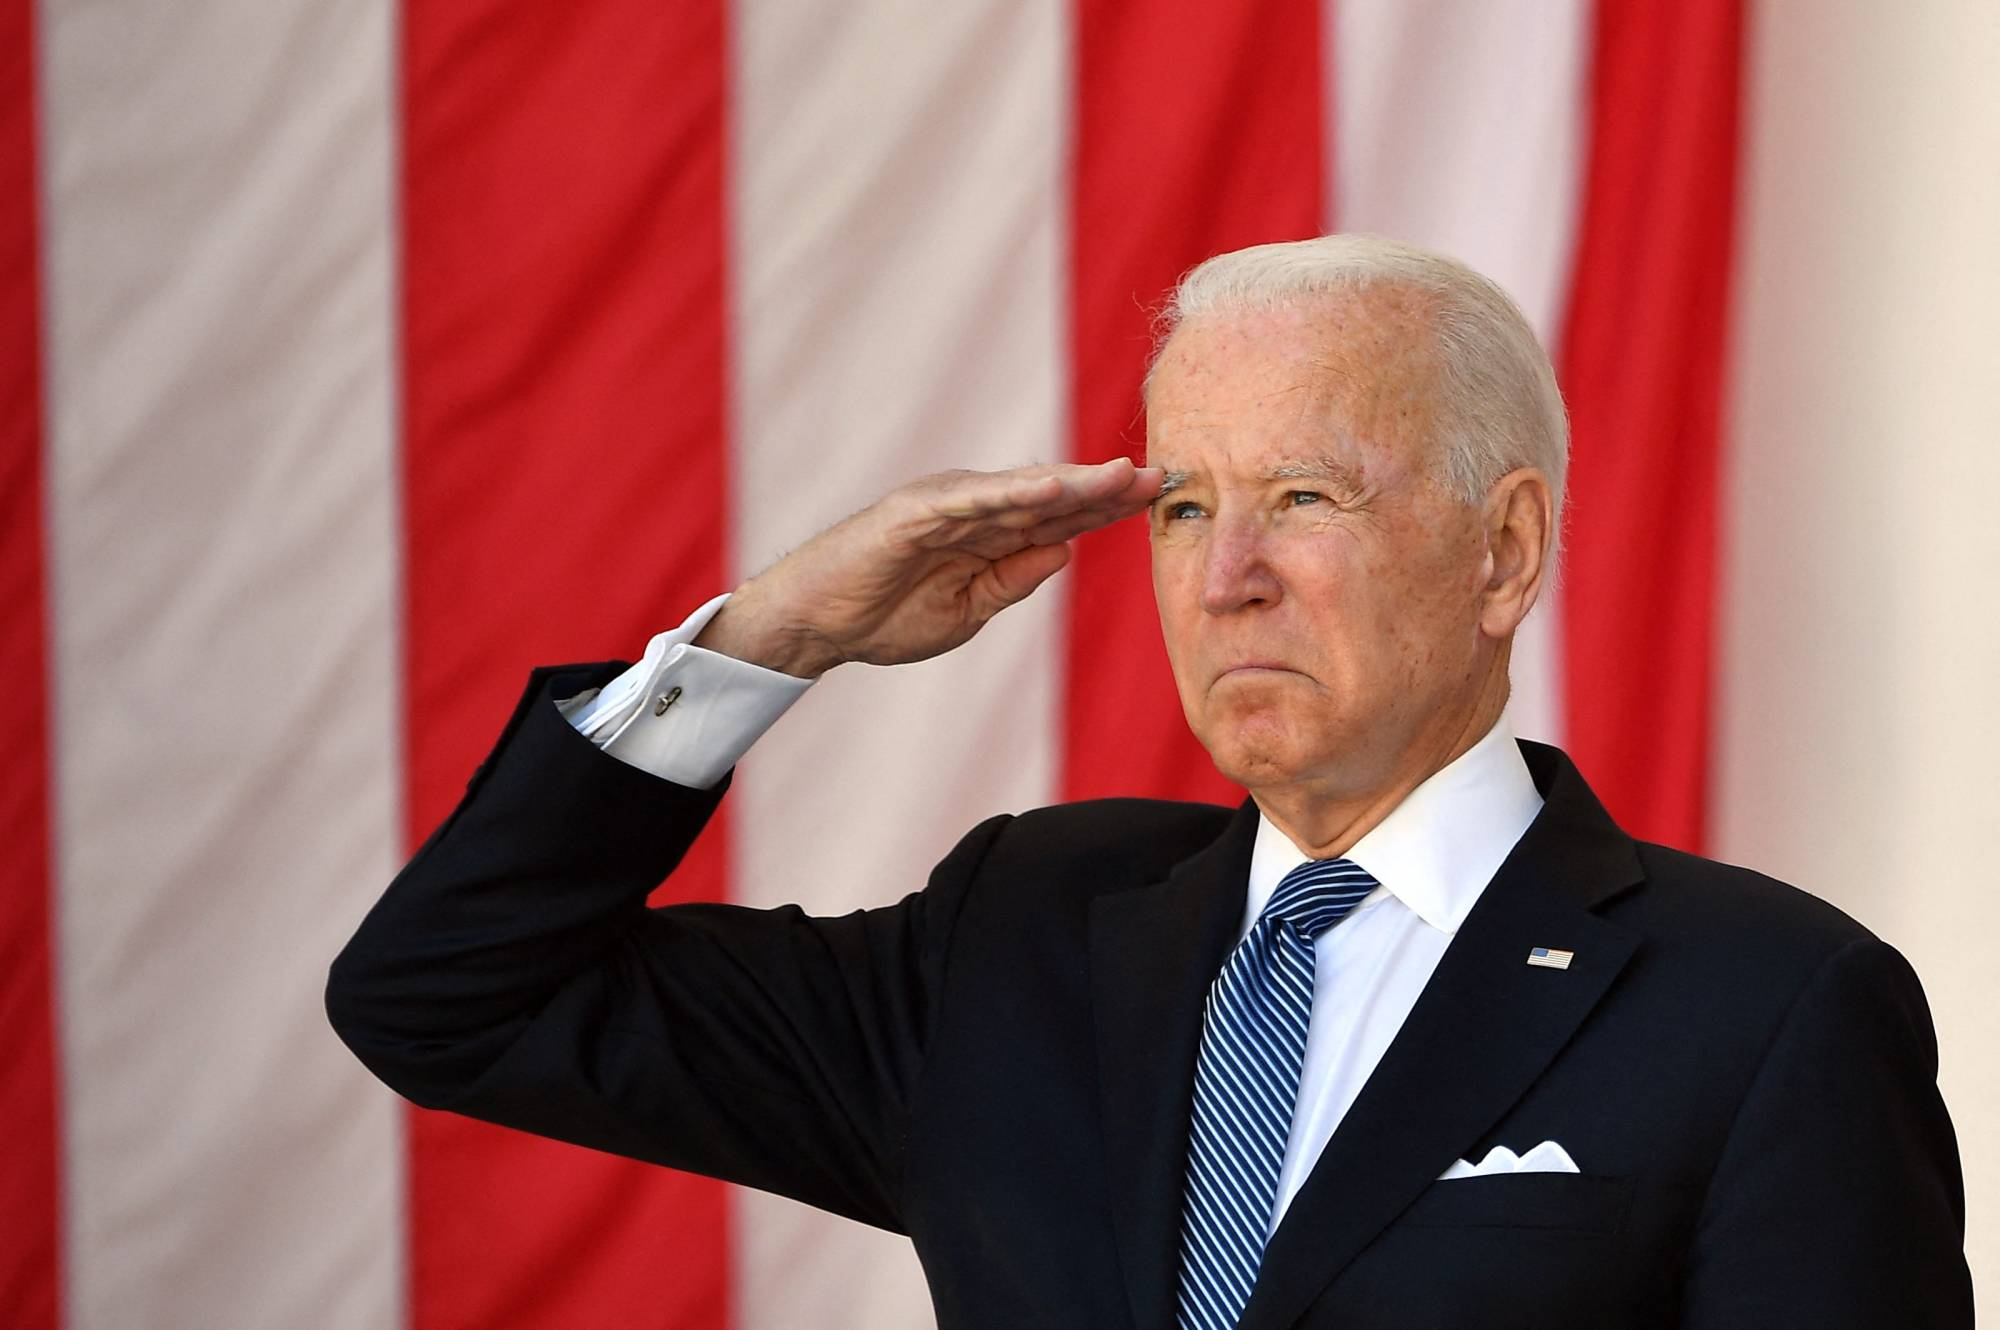 When the leaders of Group of Seven countries meet later this week, there will be one burning question: Can U.S. President Joe Biden unite the globe's top democracies in taking on China's growing military and economic assertiveness? | AFP-JIJI